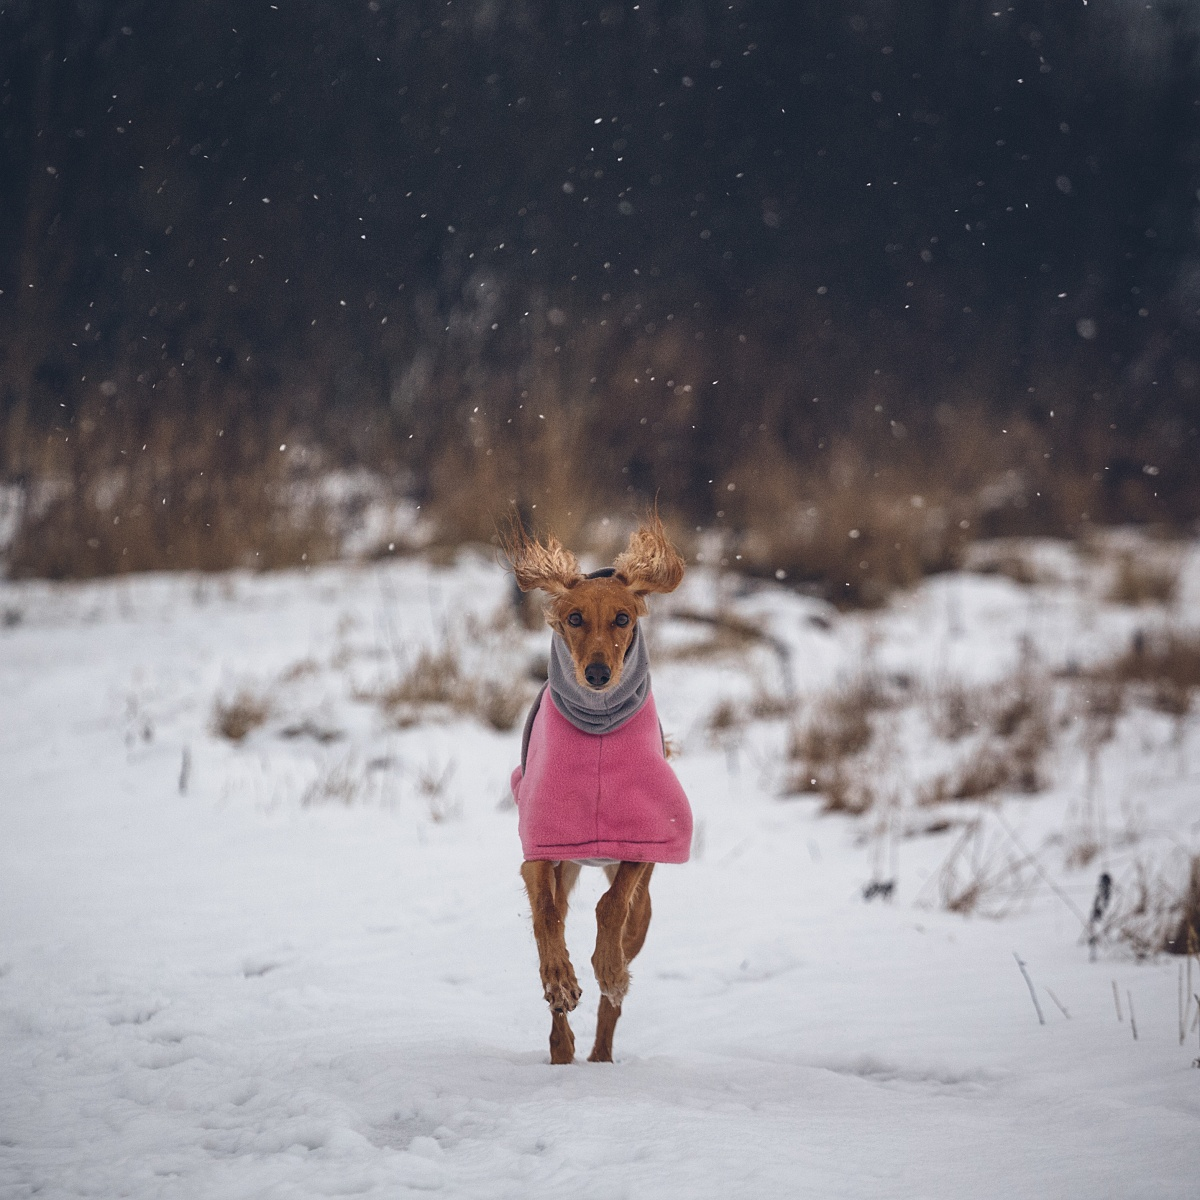 Tsiri the saluki is running in the snow